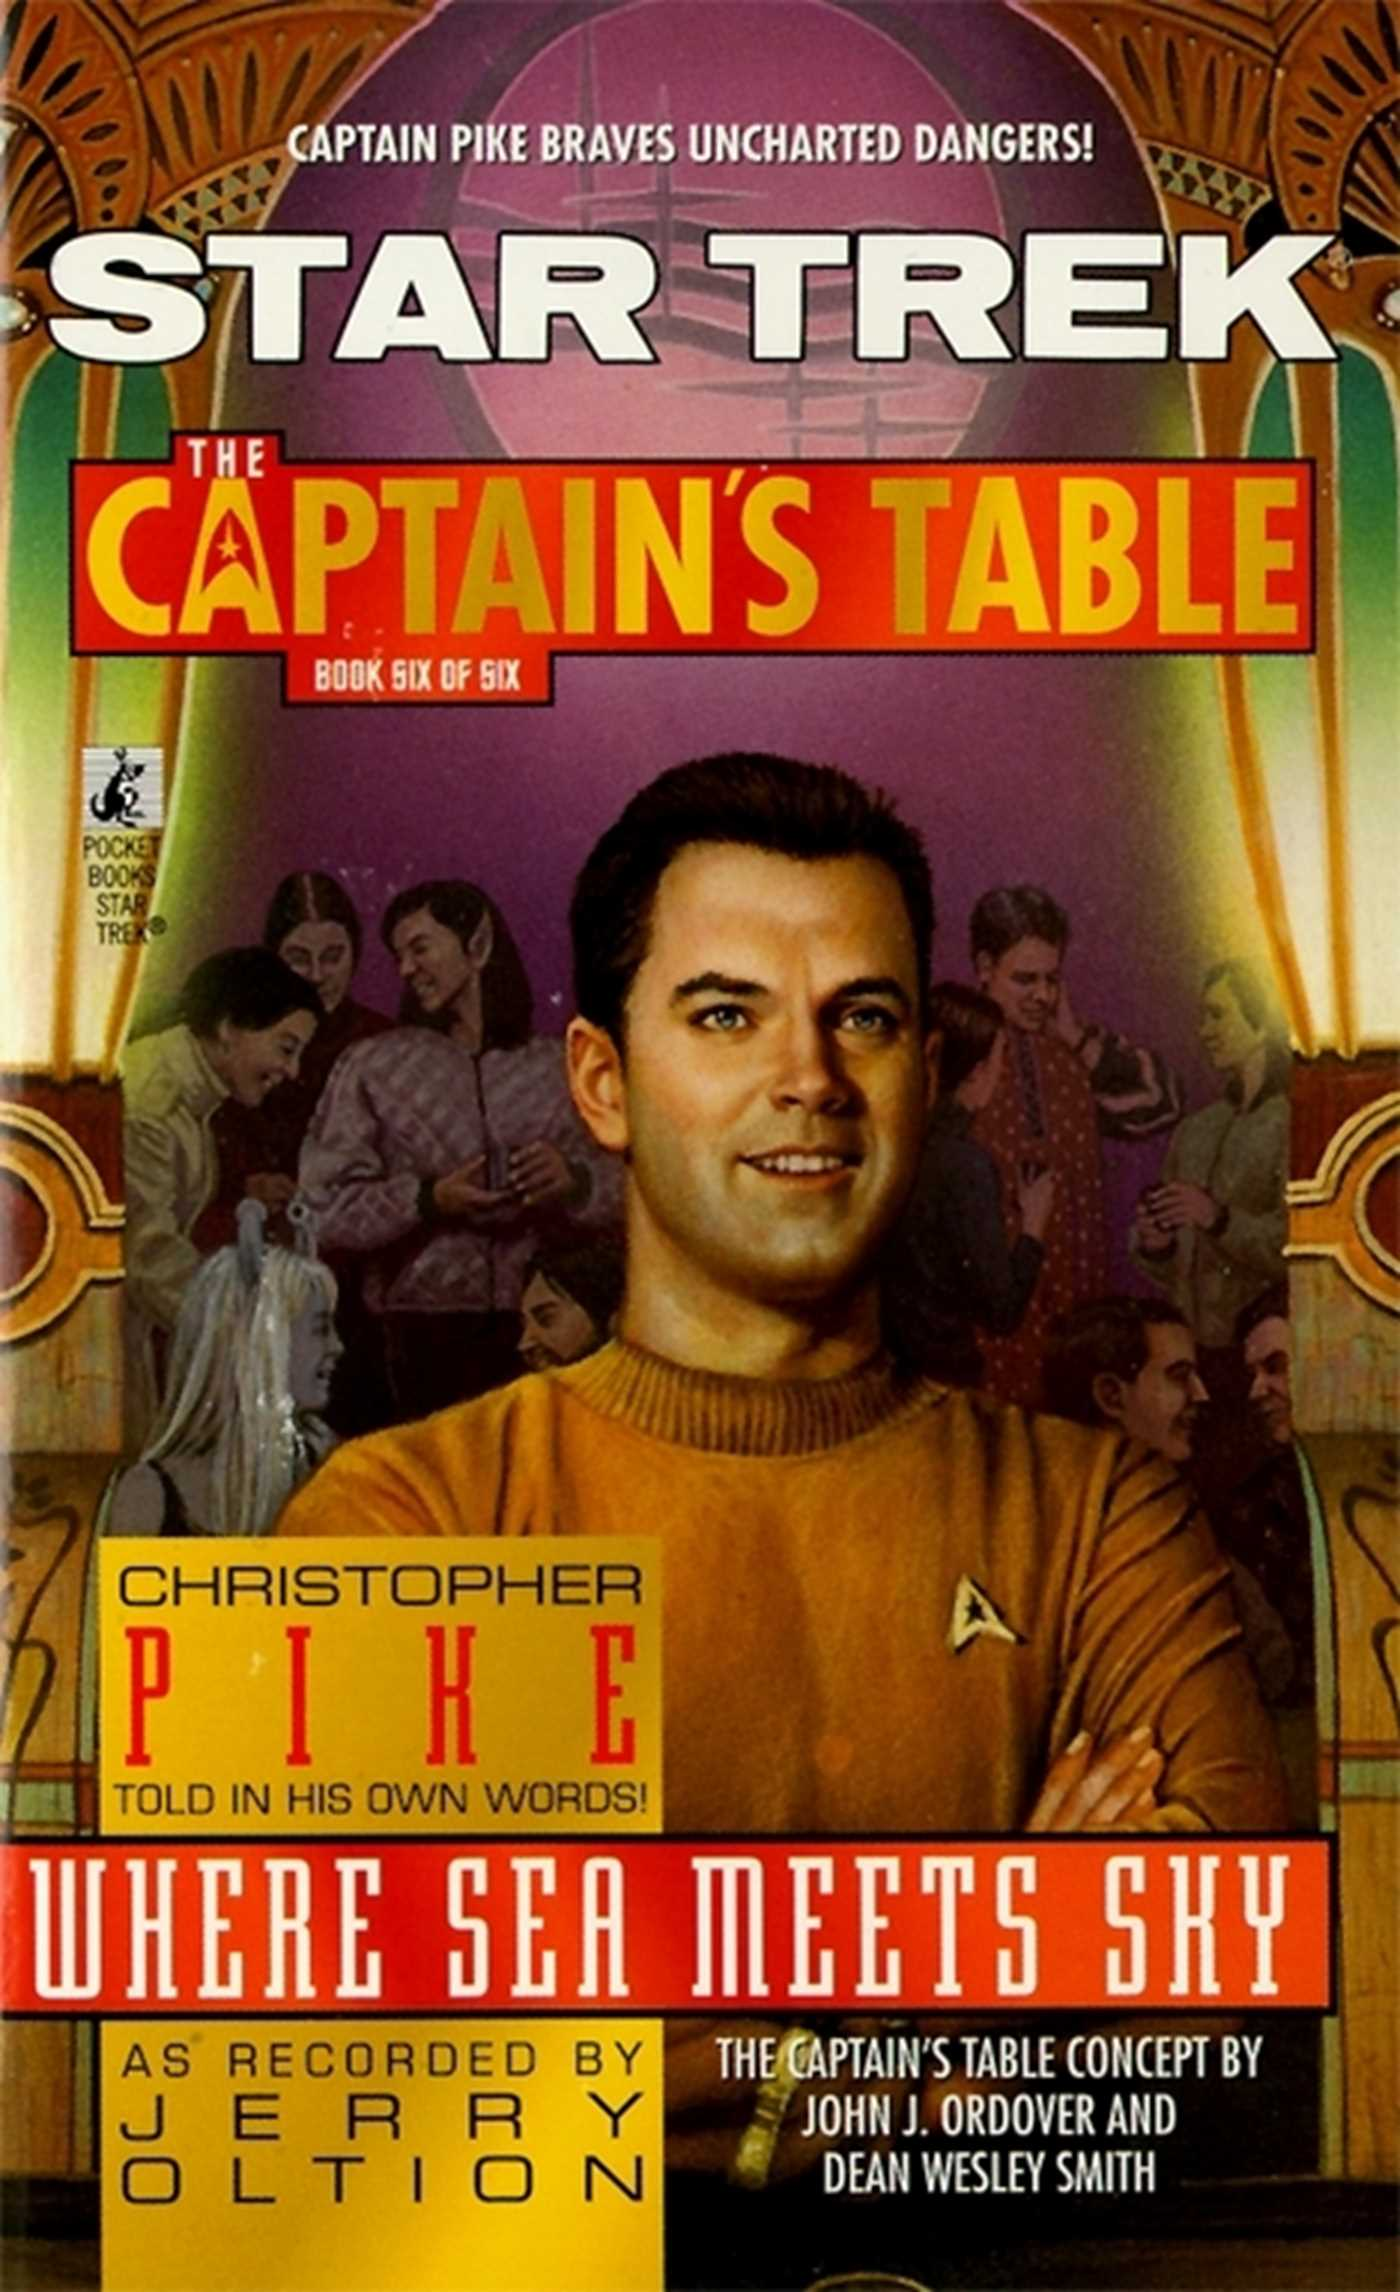 Star-trek-the-captains-table-6-christopher-pike-where-sea-meets-sky-9781439108536_hr